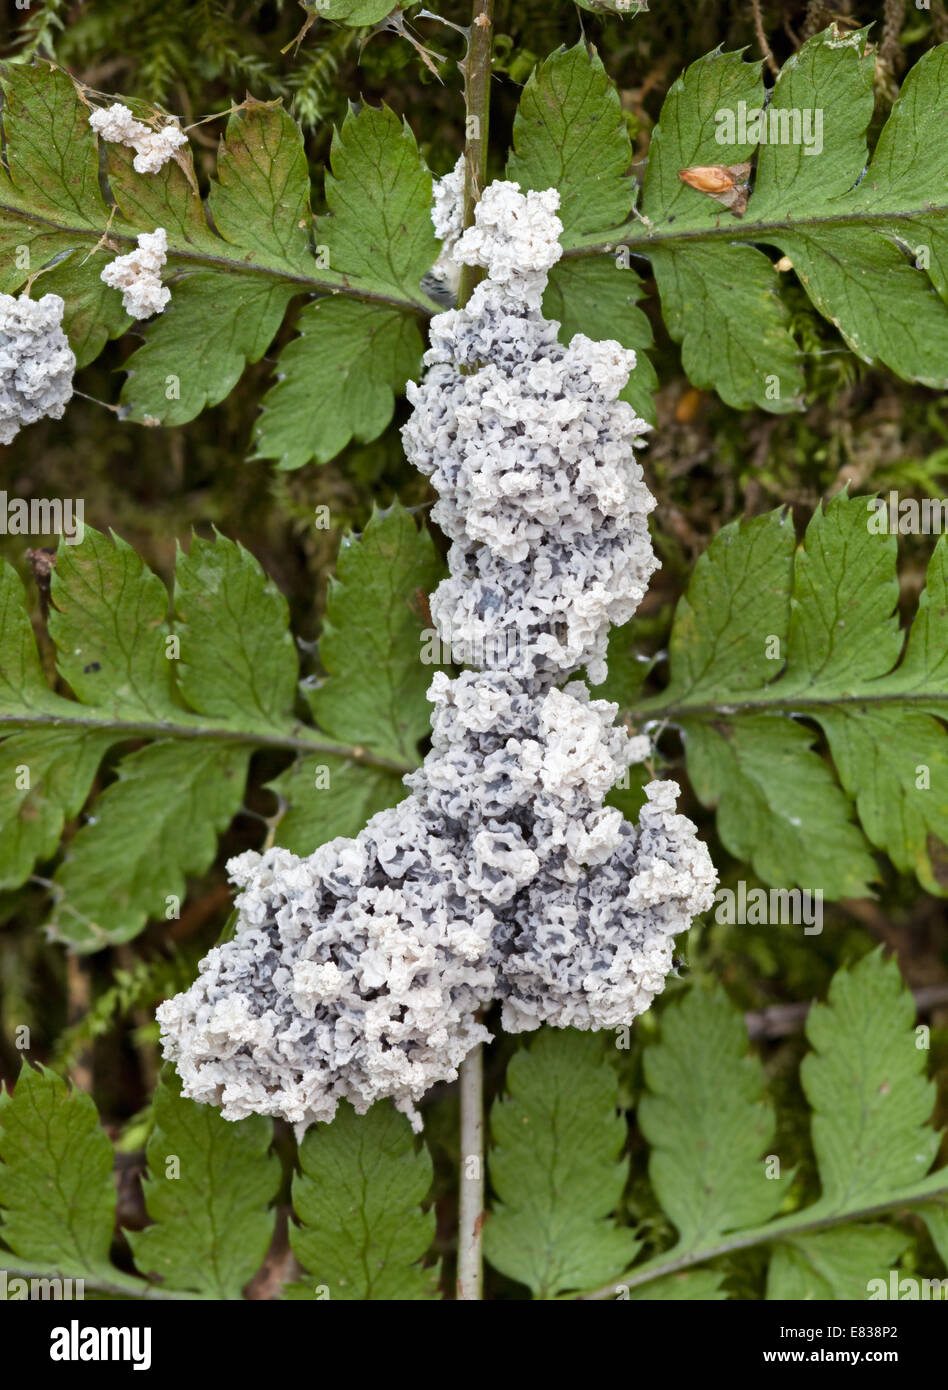 The Dog Sick Slime mold - Stock Image